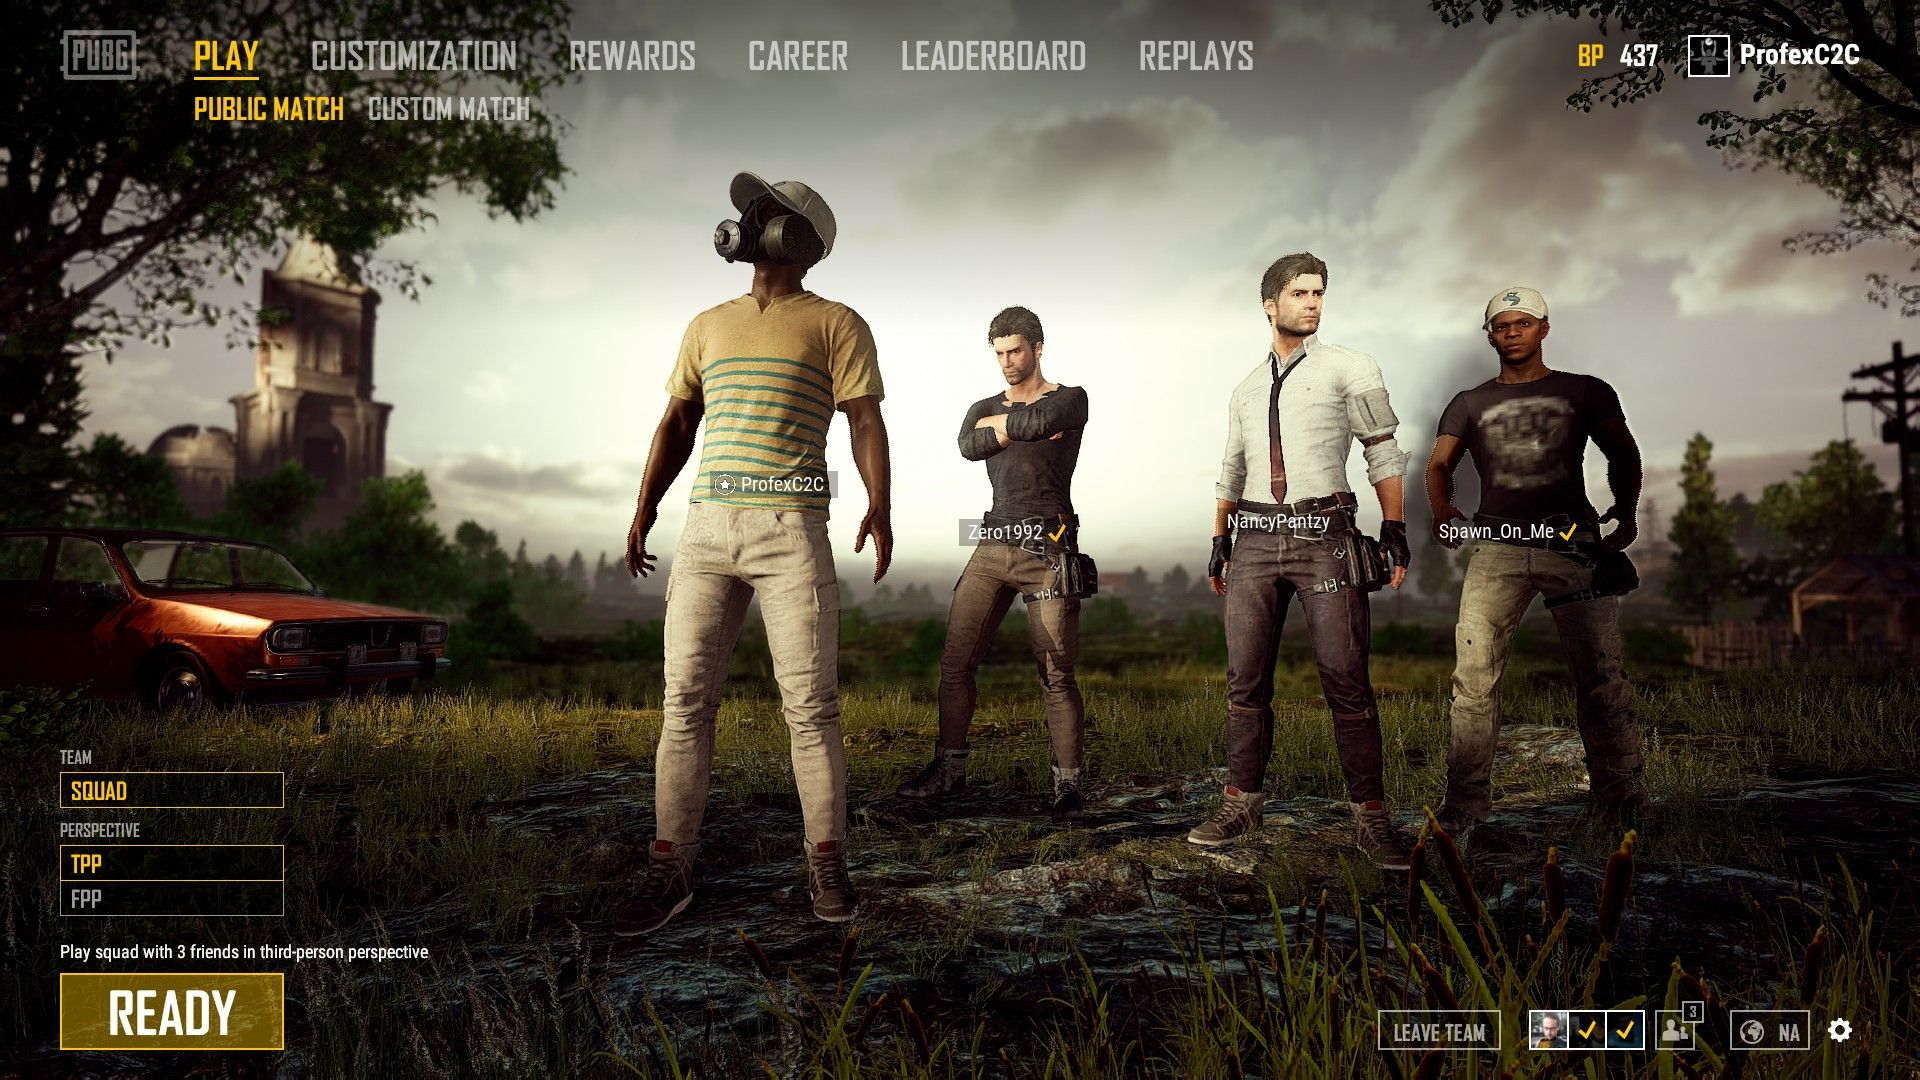 PUBG Corp Testing Ping-Based Matchmaking This Week